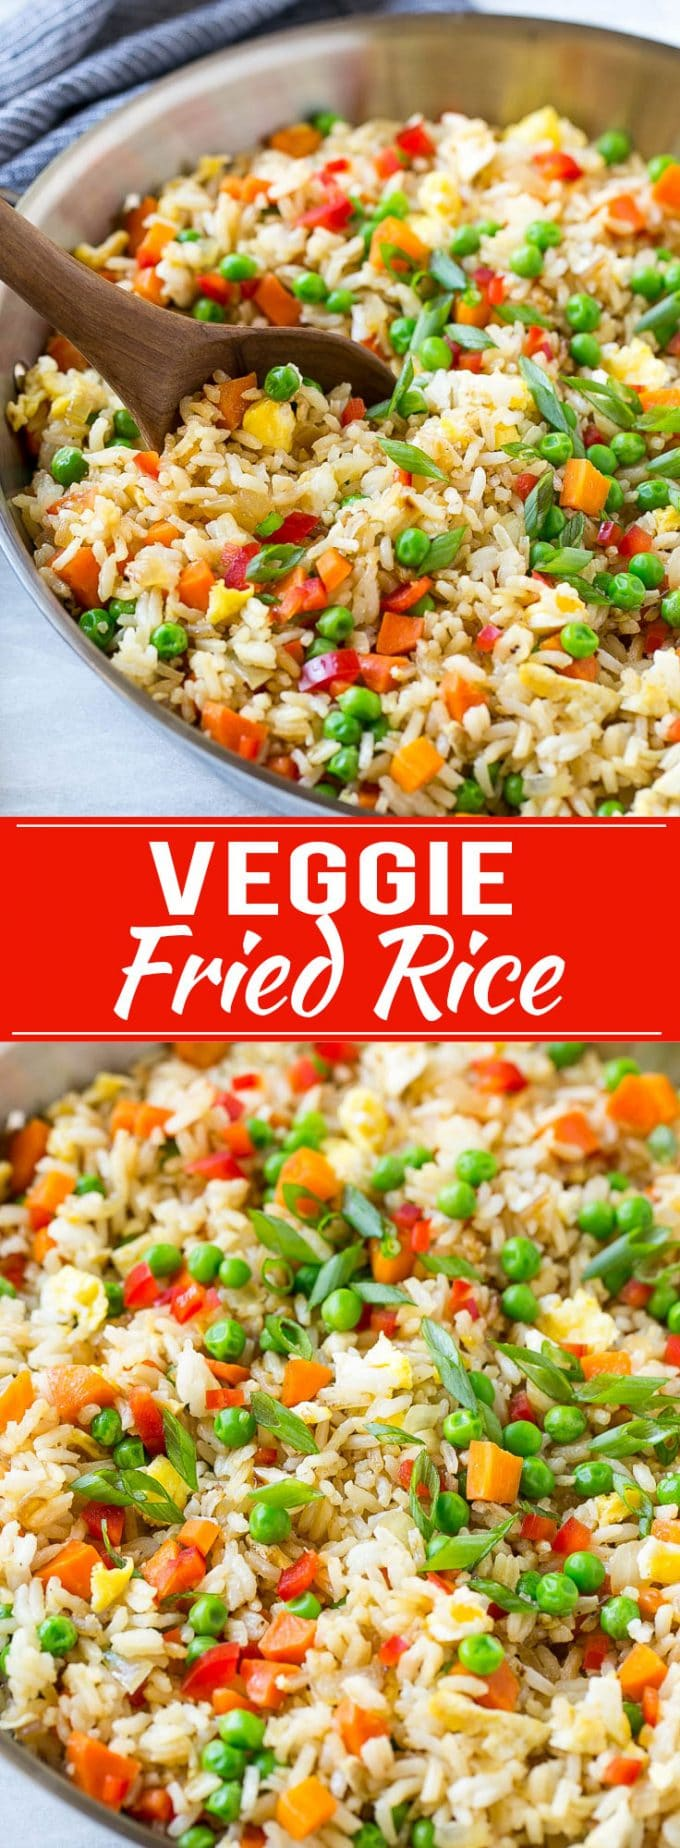 Veggie Fried Rice Recipe | Vegetarian Fried Rice | Easy Fried Rice Recipe | Chinese Food | Take Out #rice #friedrice #veggie #vegetarian #sidedish #dinneratthezoo